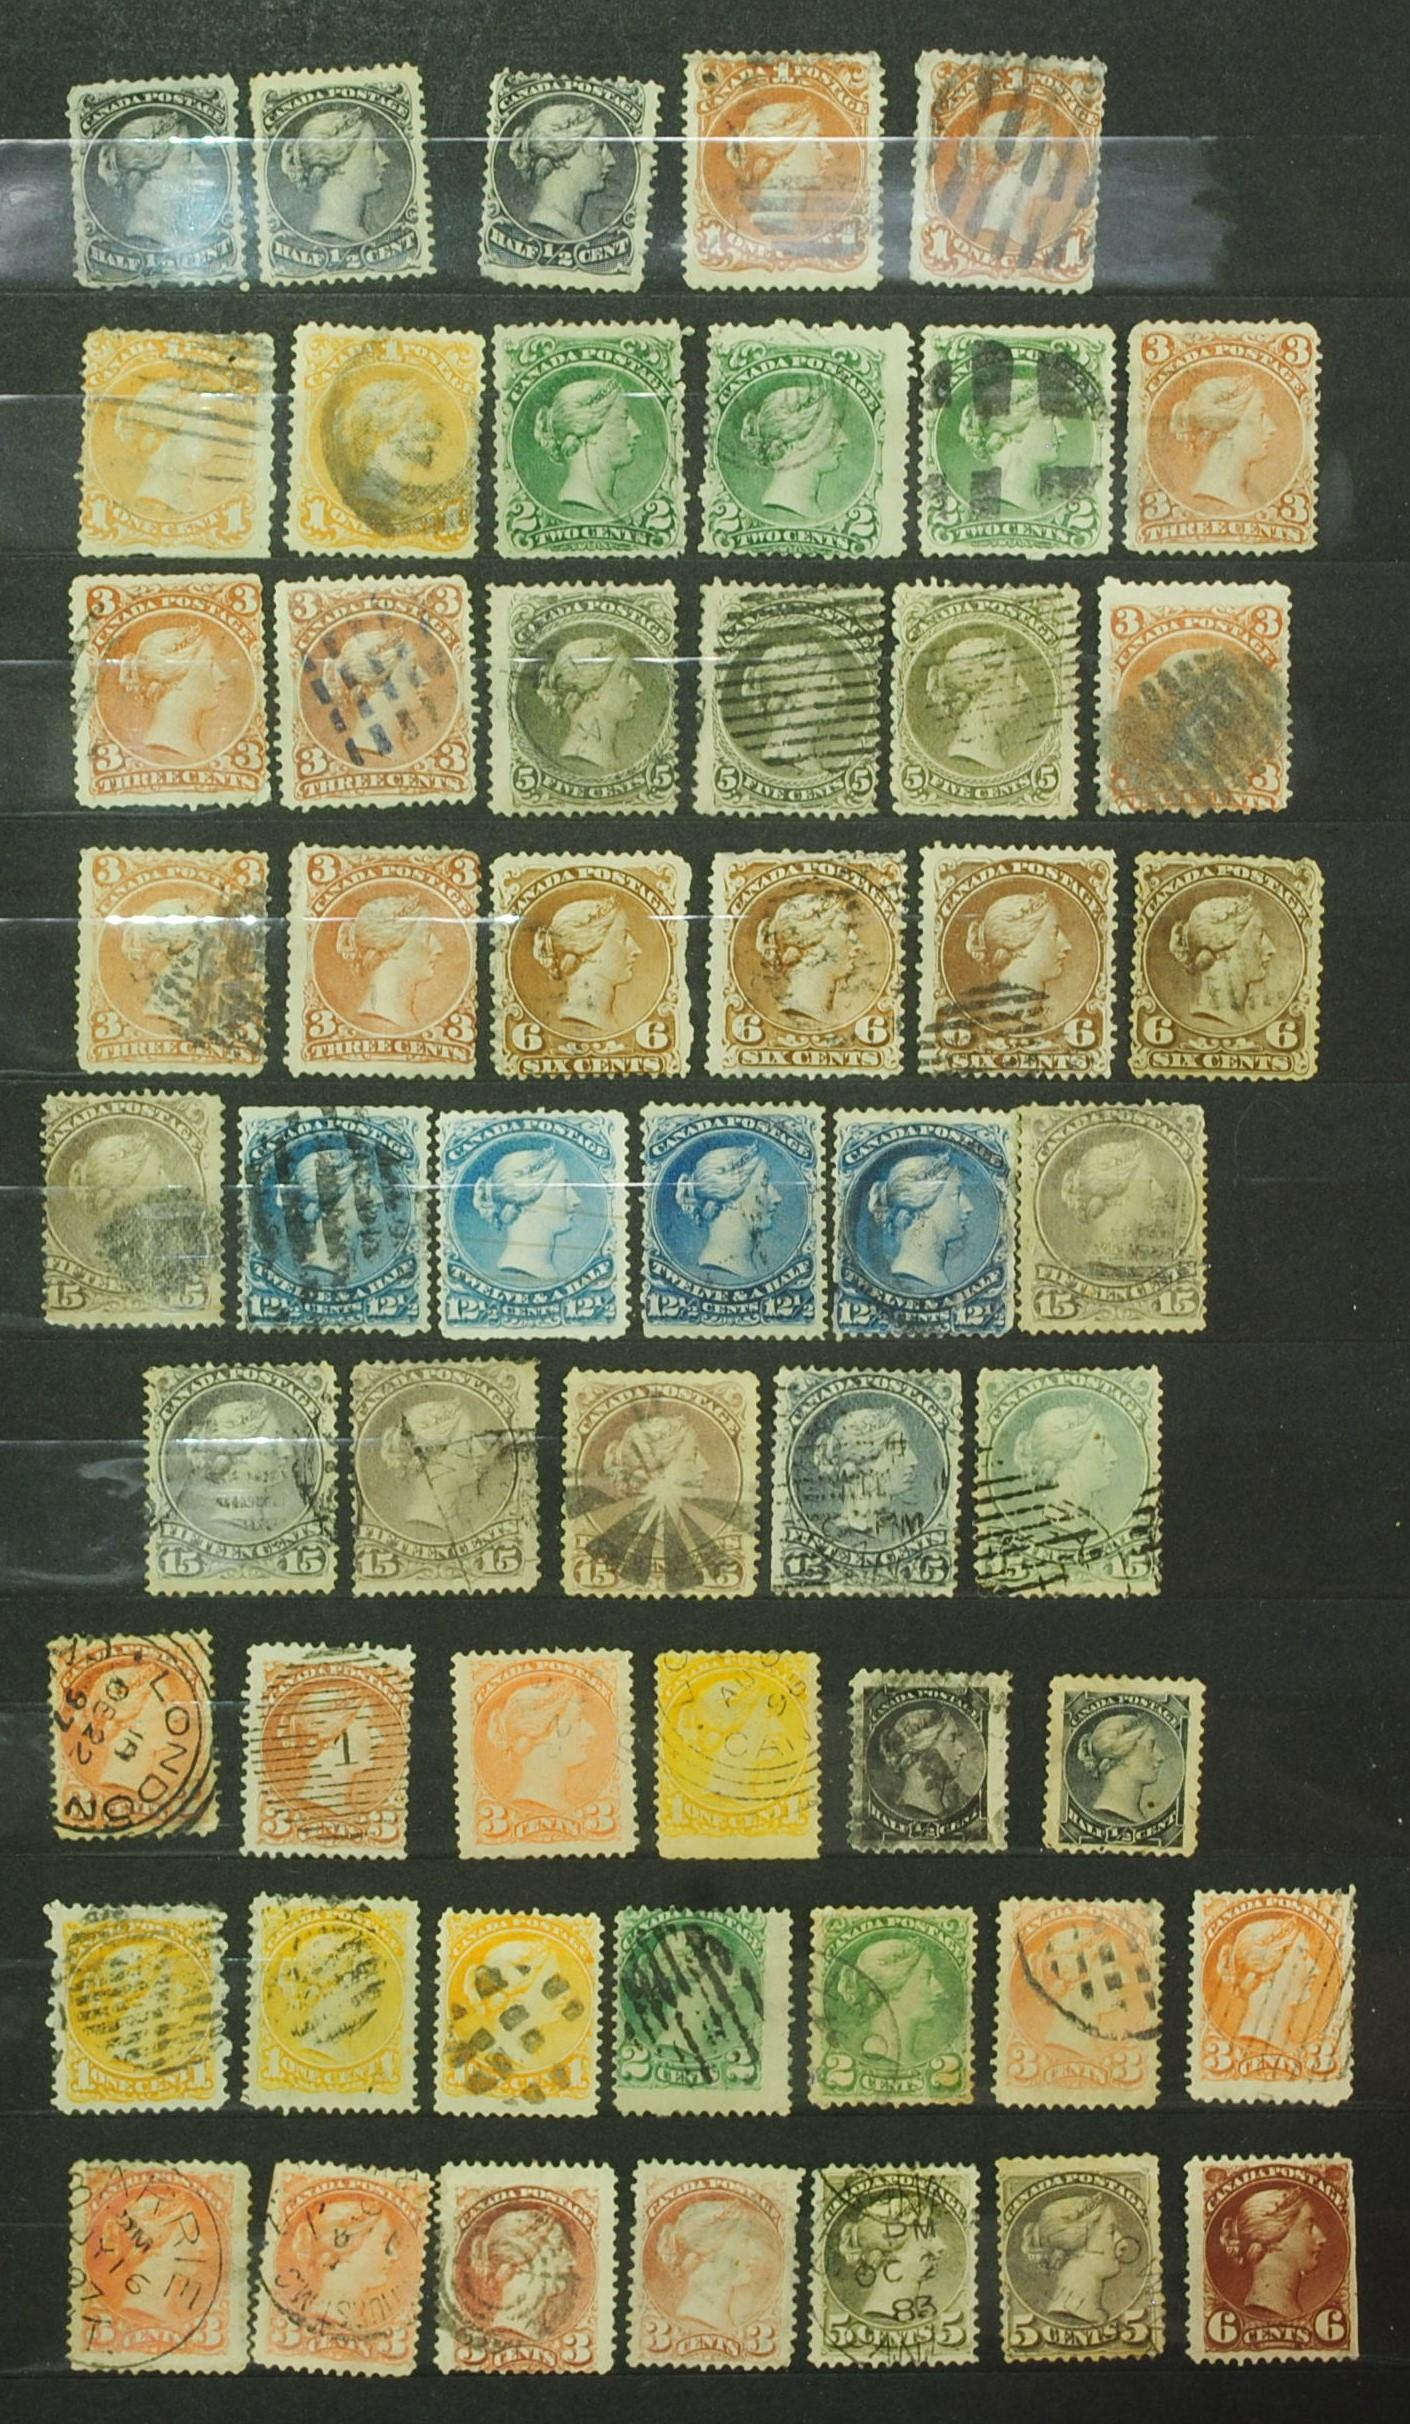 Canada Queen Victoria Stamp Collection - 68 stamps